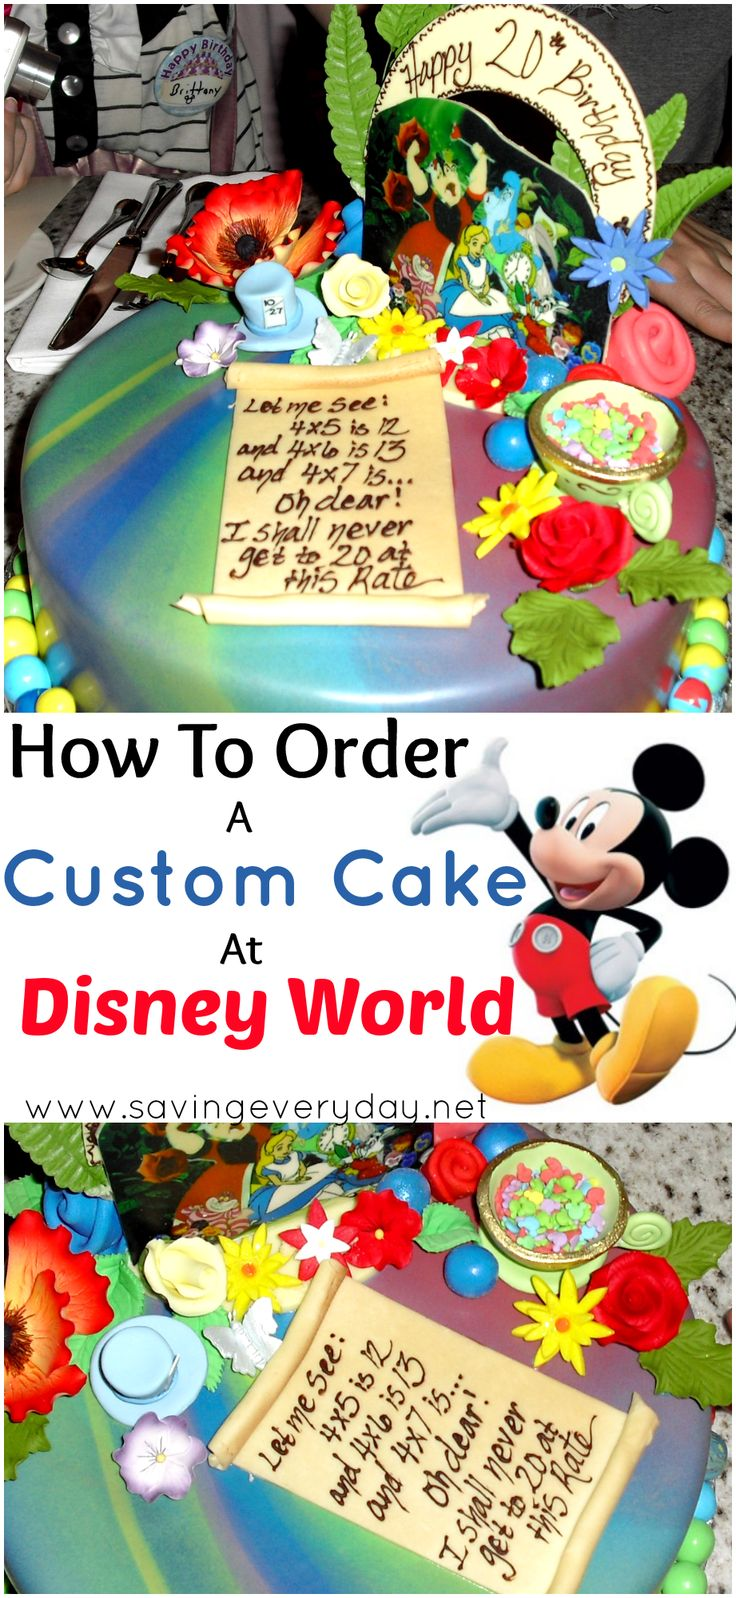 Disney loves to help you celebrate special occasions! Here's all you need to know to have a custom cake created by a Disney pastry chef, and check out the Alice In Wonderland cake I had made for my daughter! - http://www.savingeveryday.net/2014/09/custom-cake-made-disney-world/